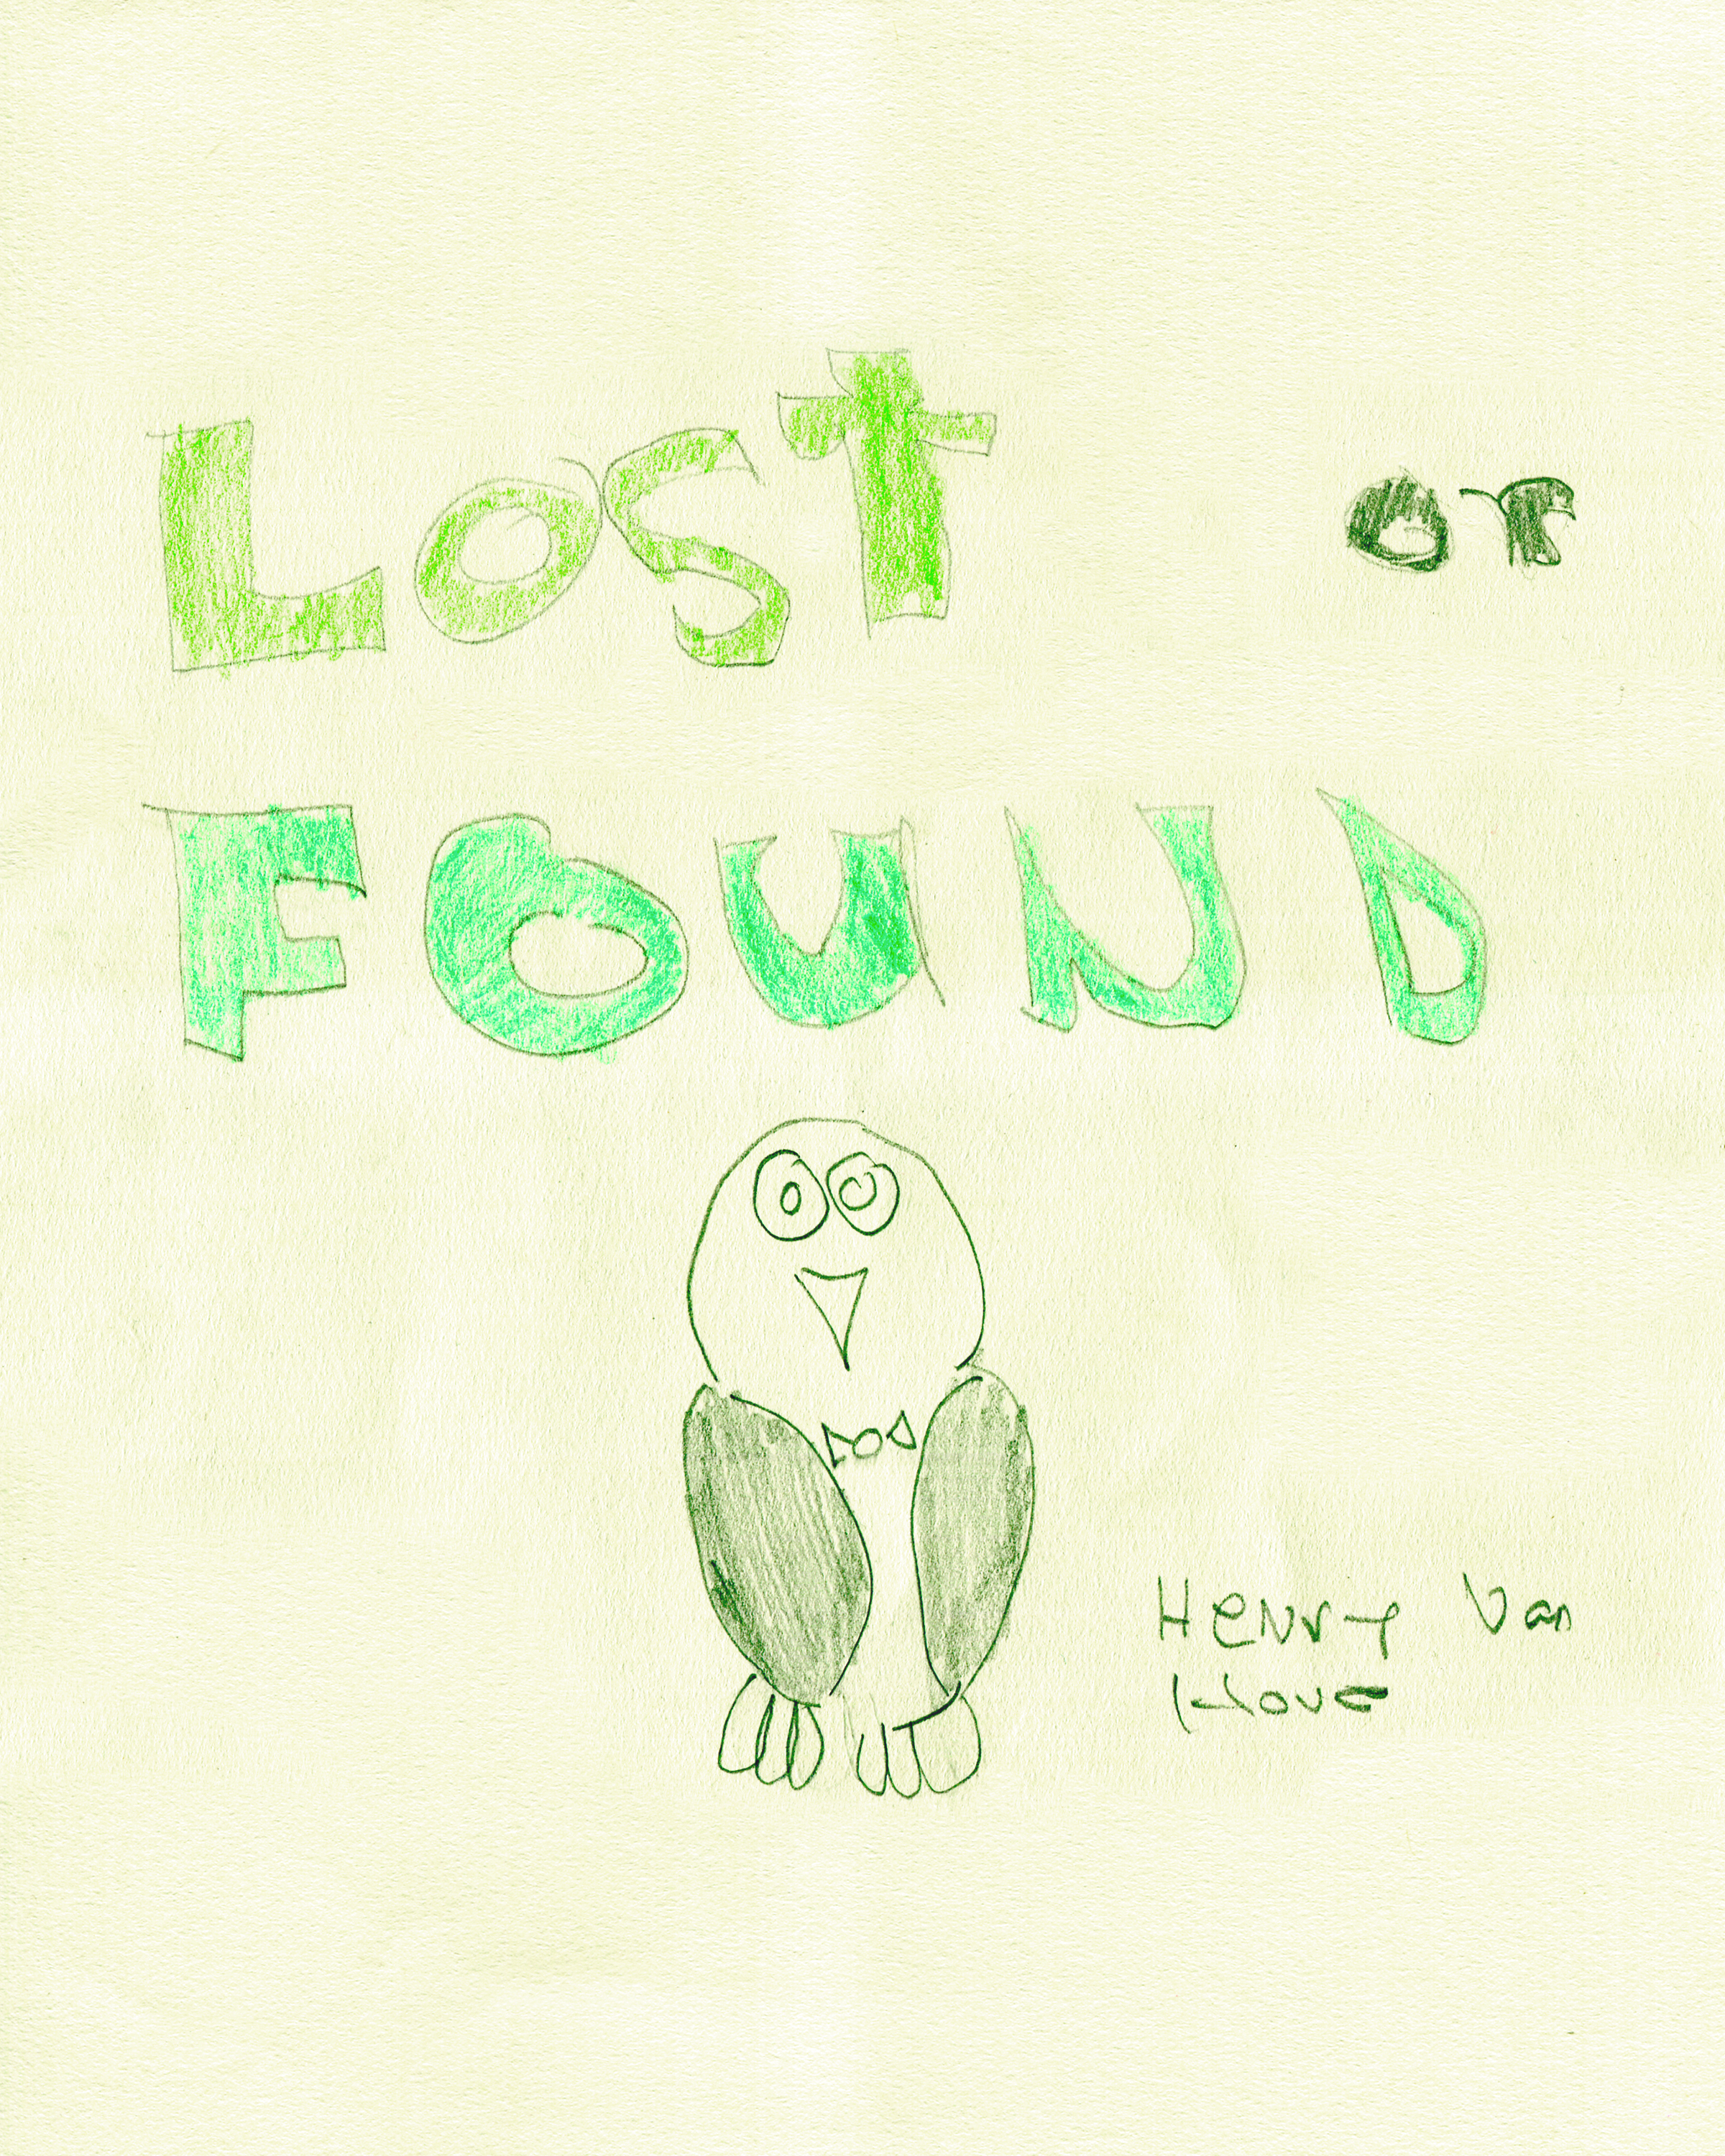 Lost or Found    by Henry Van Hove